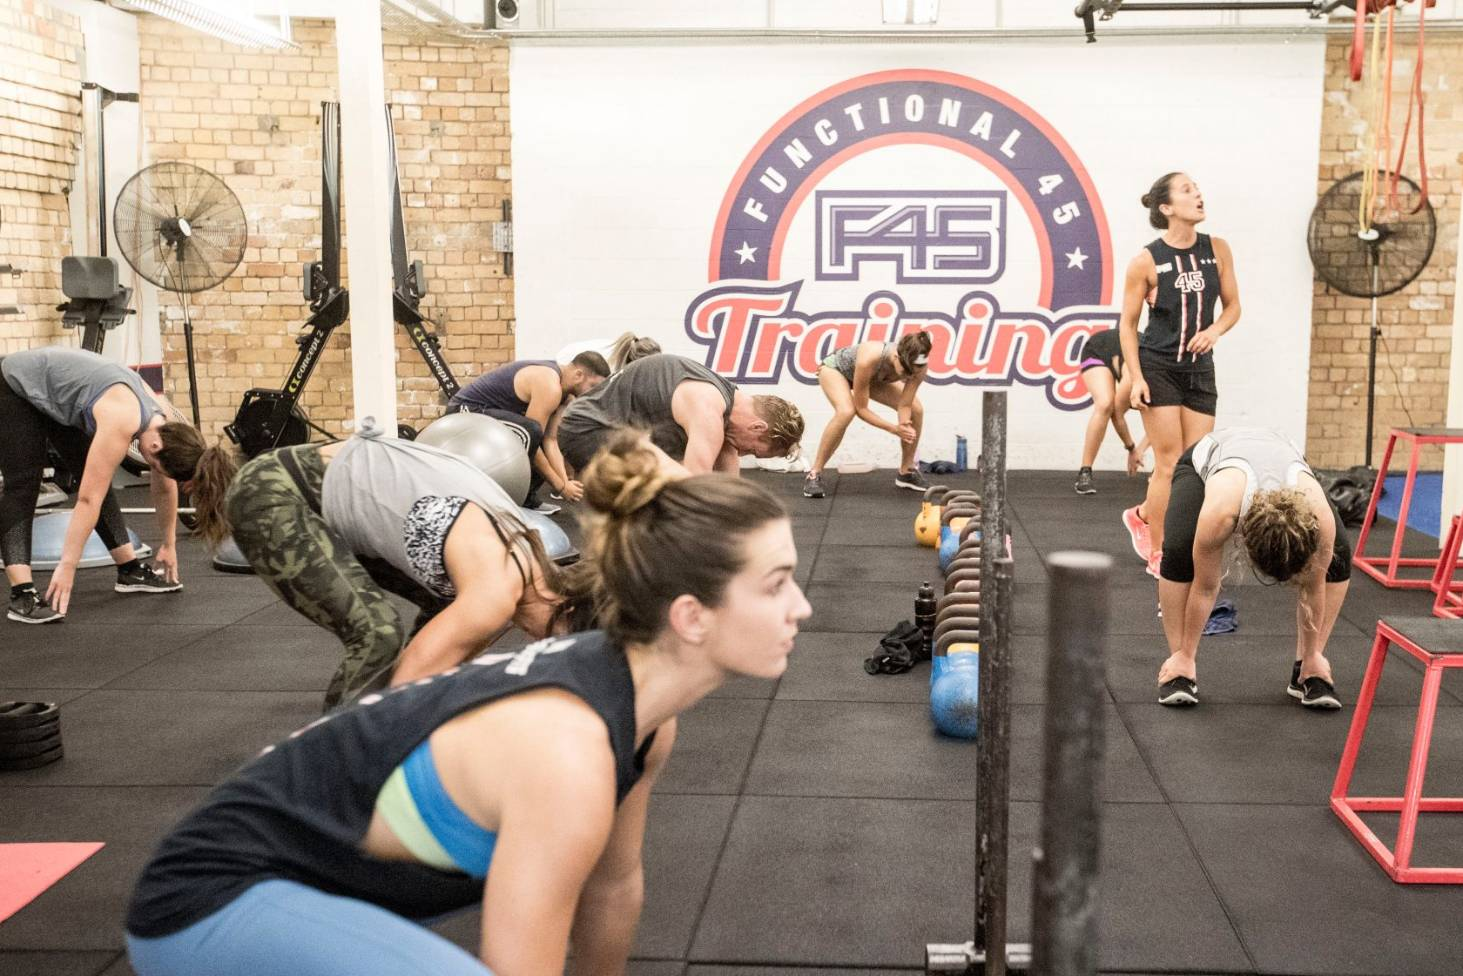 We try F45: 'The hardest workout I've ever done' | Stuff co nz